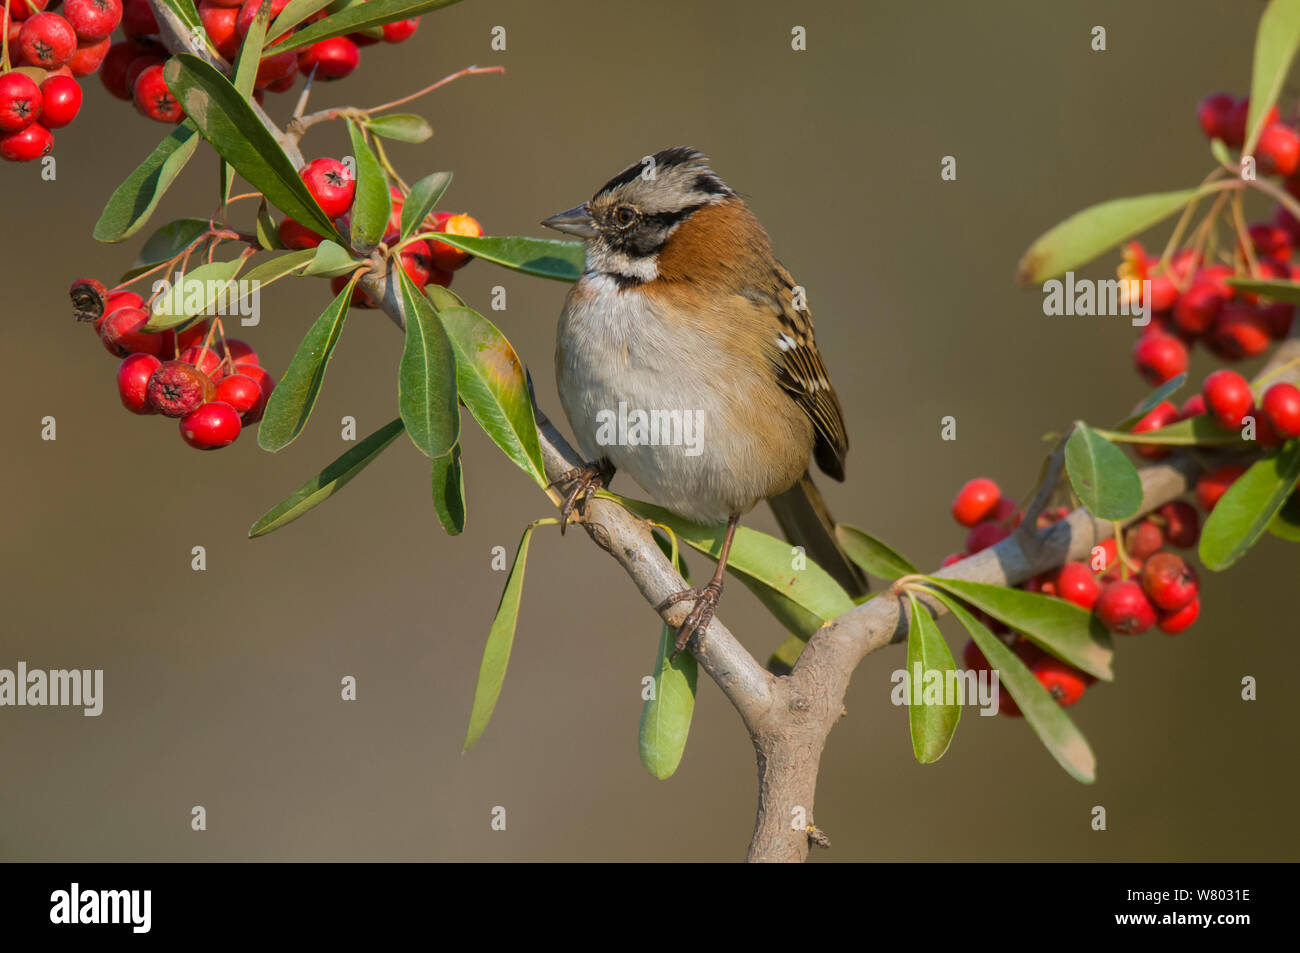 Rufous-collared sparrow (Zonotrichia capensis) perched amongst berries, Calden forest, La Pampa, Argentina. Stock Photo